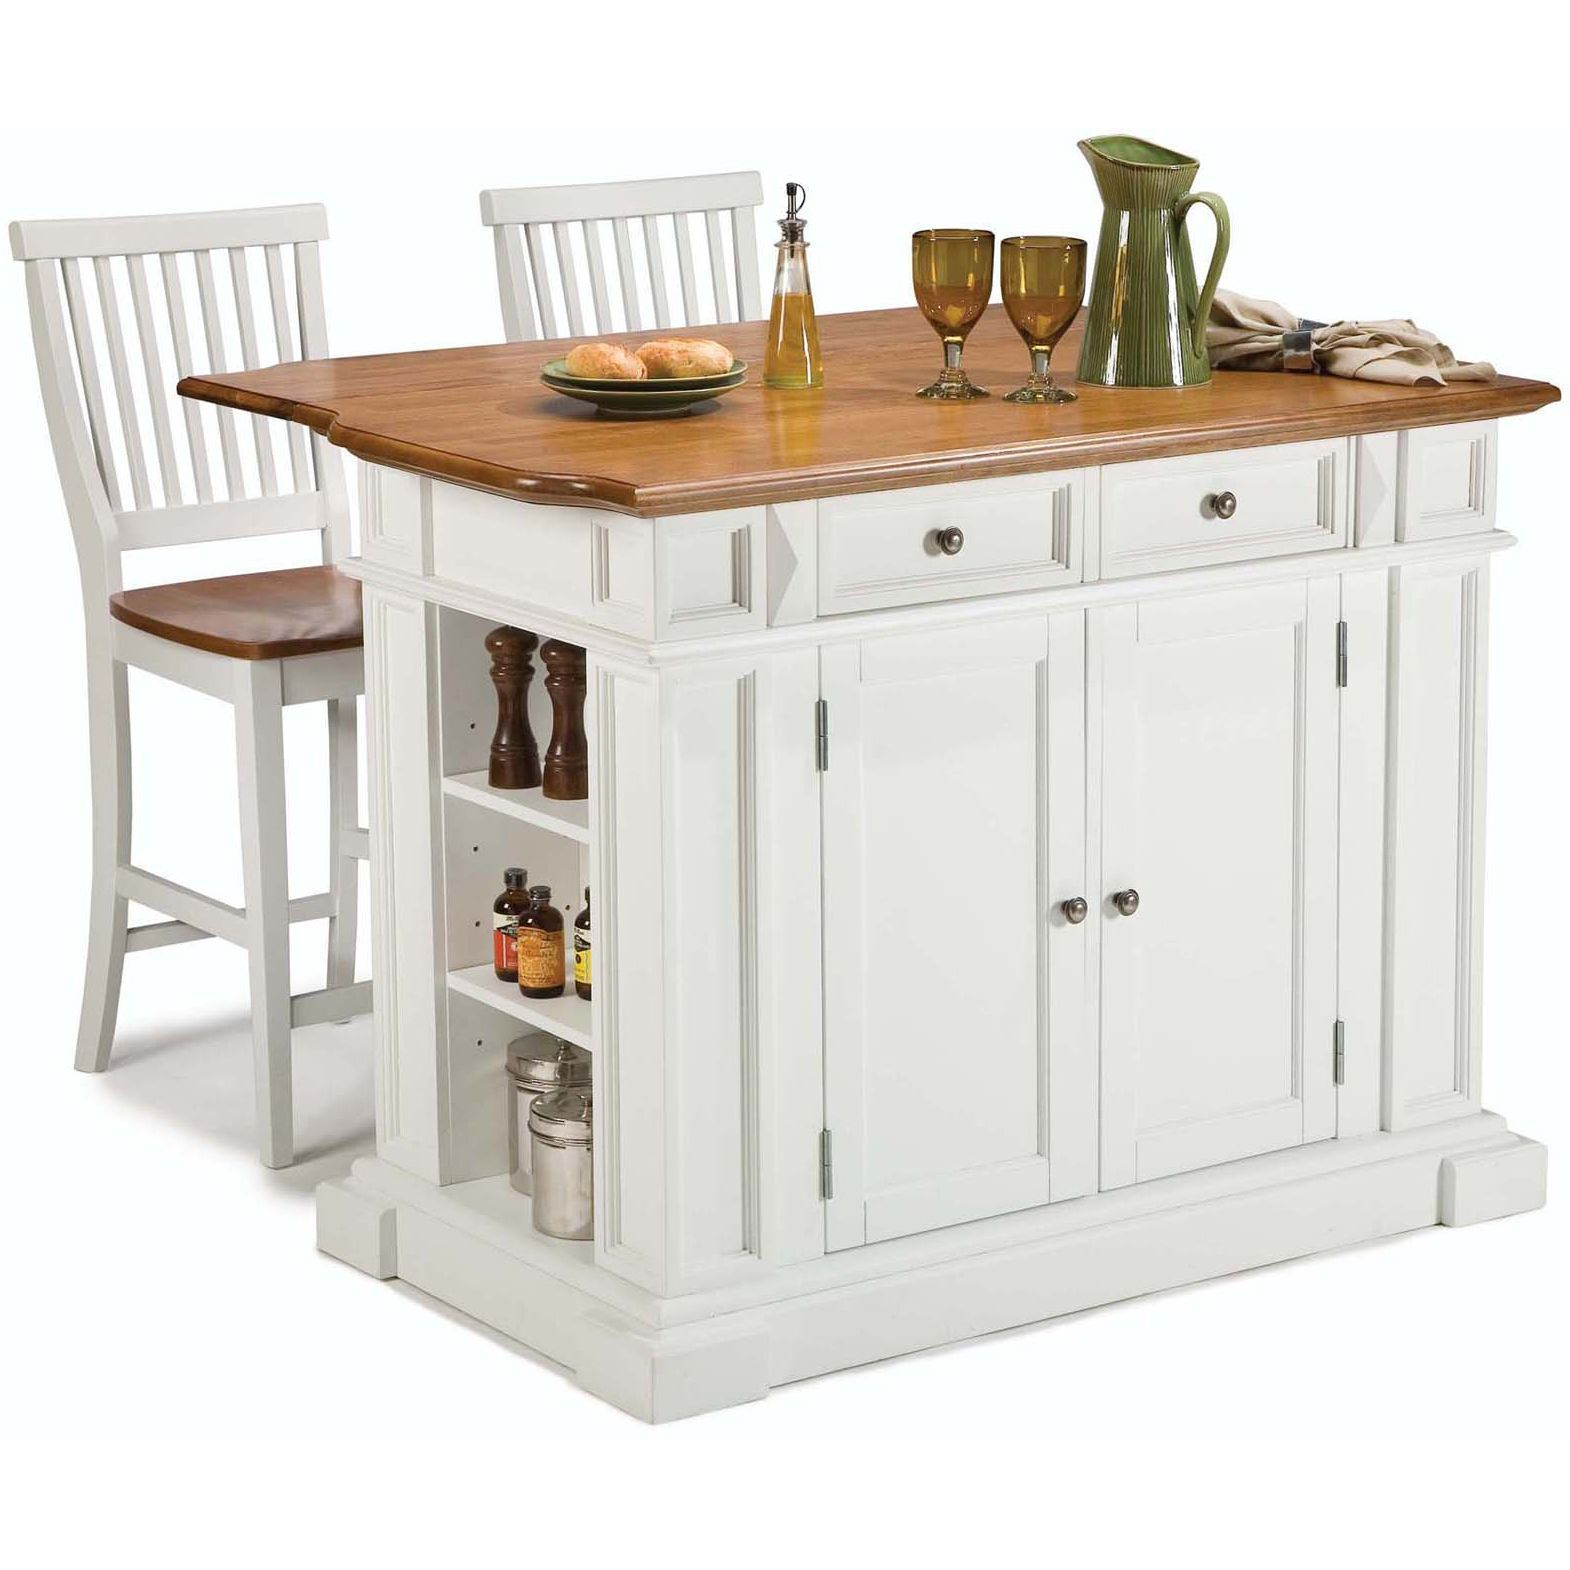 Add A Touch Of Timeless Class, Plenty Of Storage Space And A Functional  Work Top To Your Kitchen With This Oak Kitchen Island. Antiqued Nickel  Cabinet Pulls ...